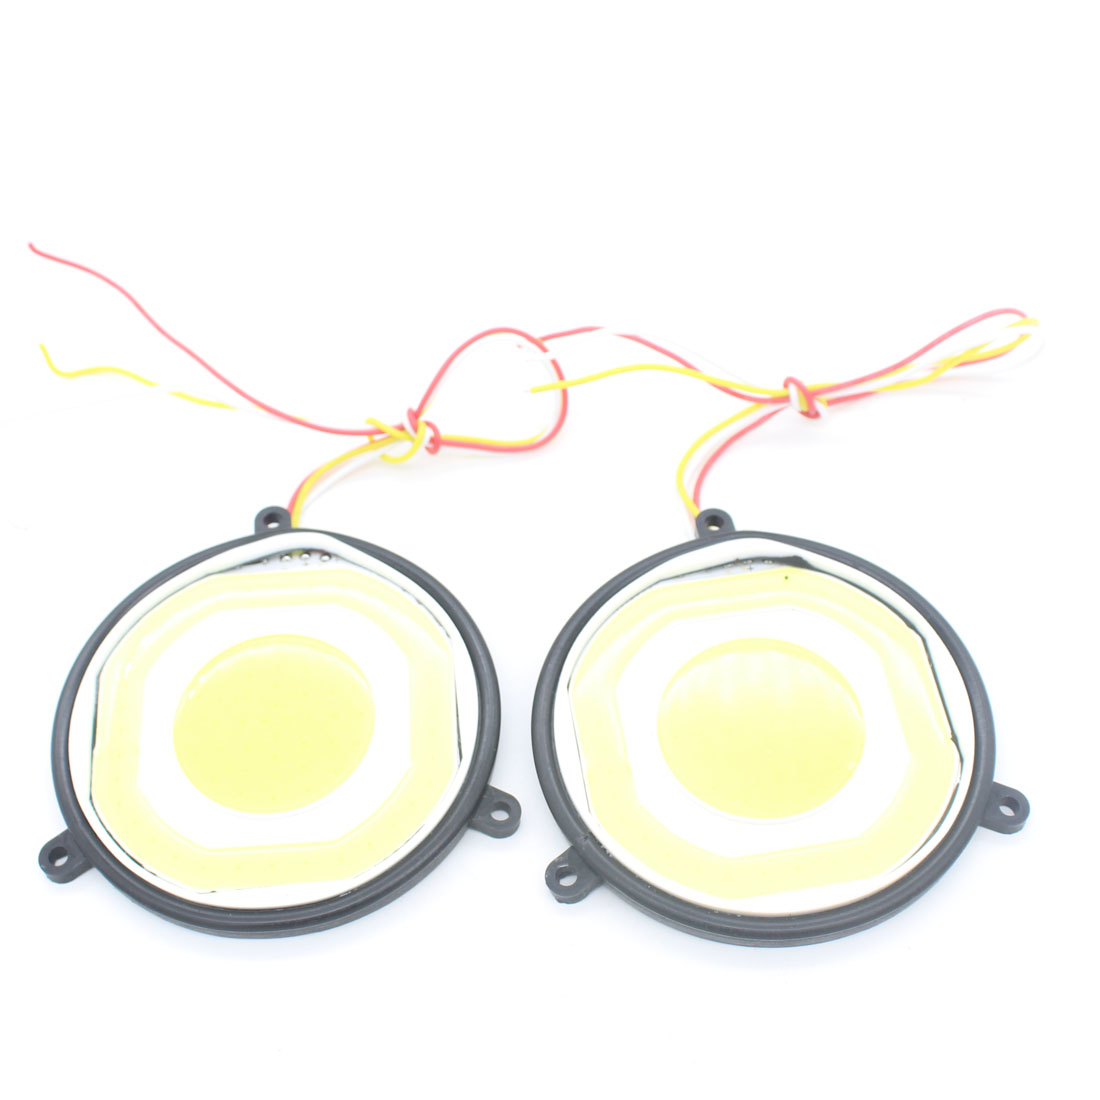 2X Auto Car LED COB Reverse Light Warning Turn Signal Light Daytime Running Light Fog Lamp Interior Automobile Car Styling